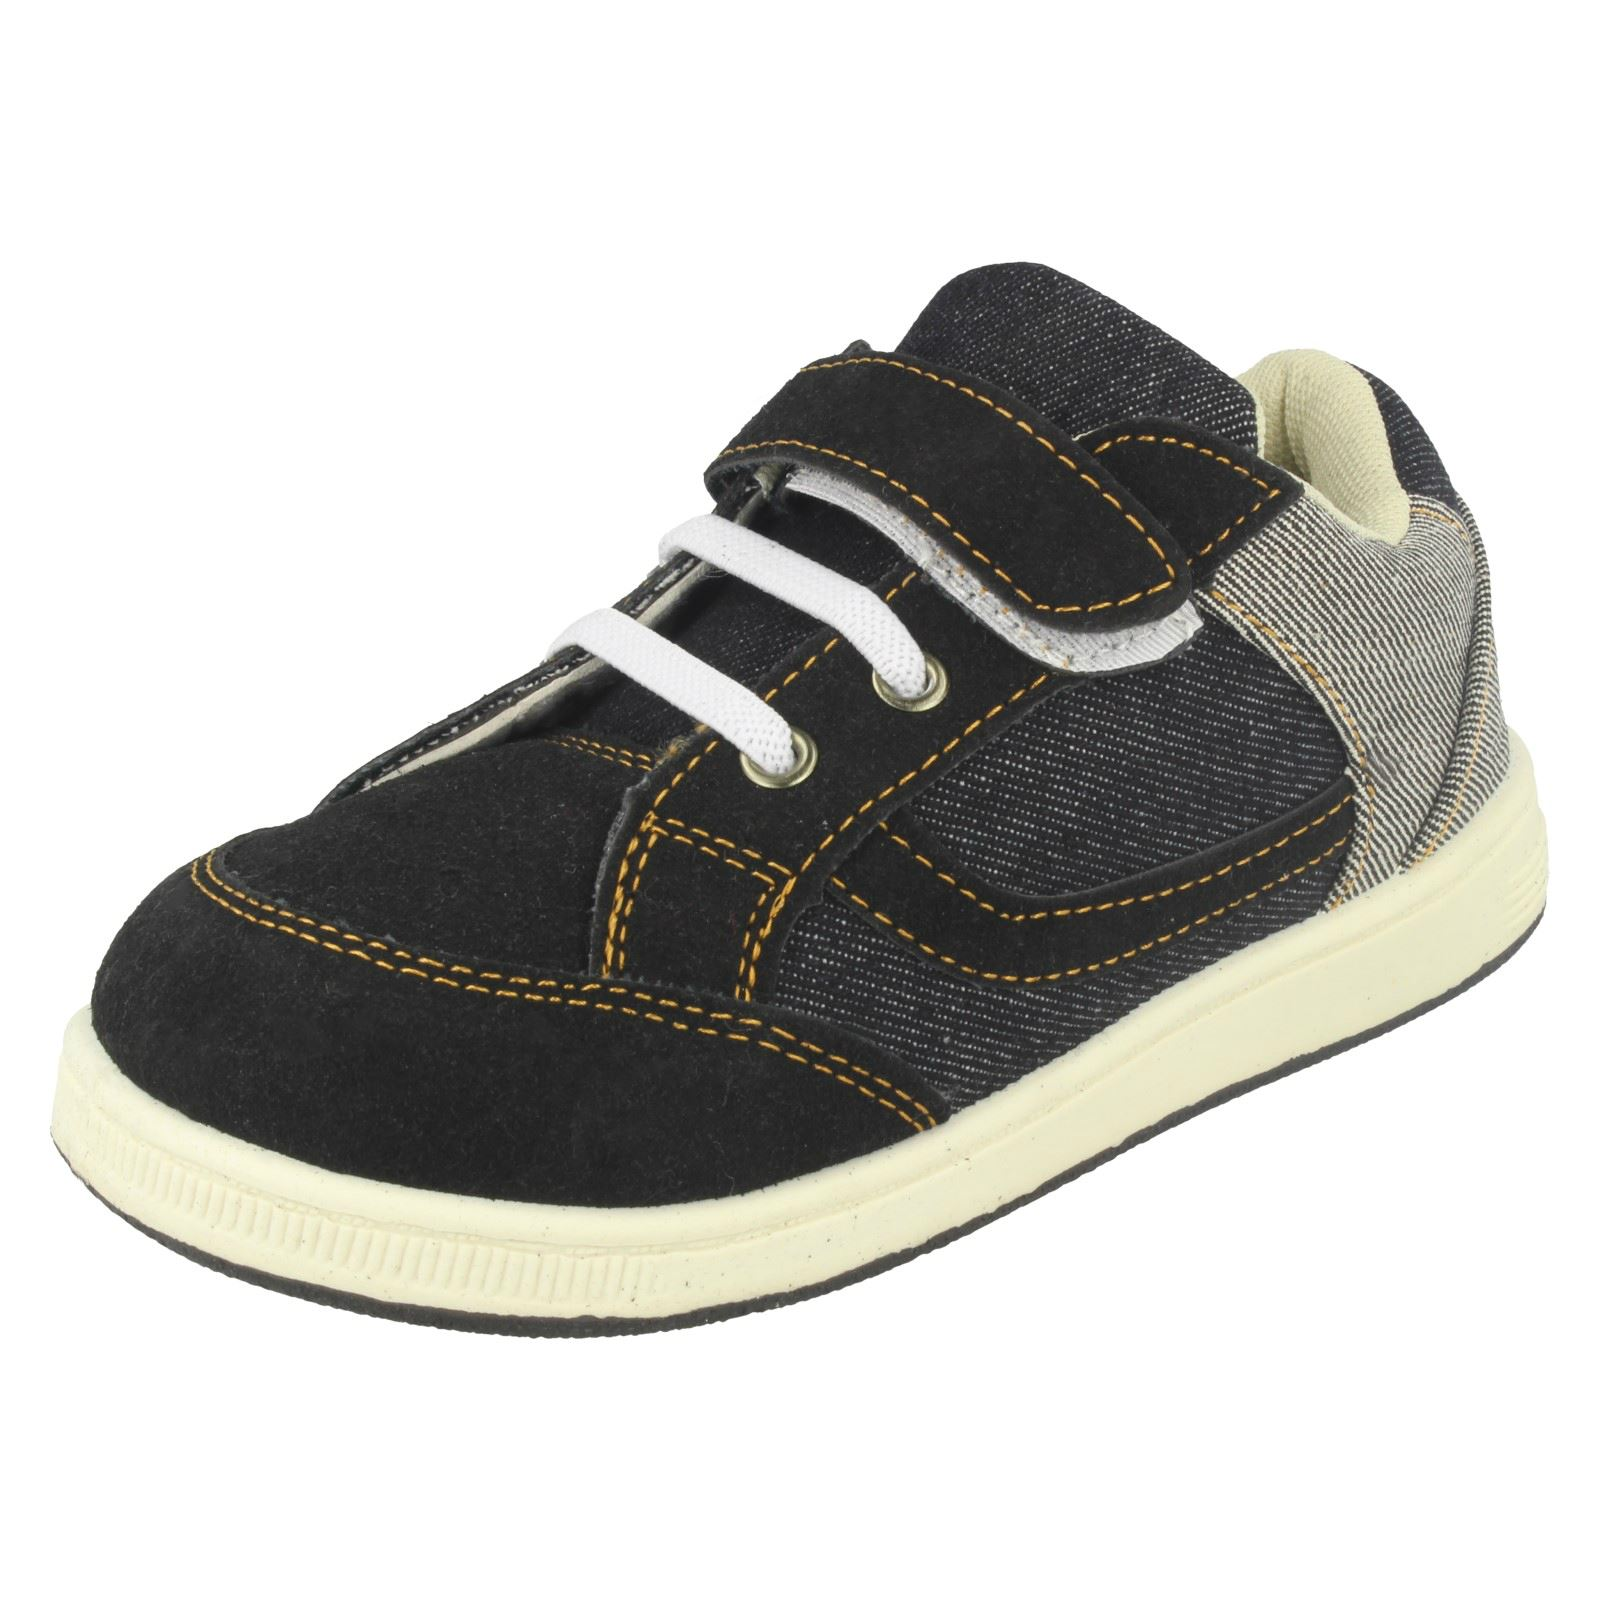 JCDees Boys Flat Casual Shoes